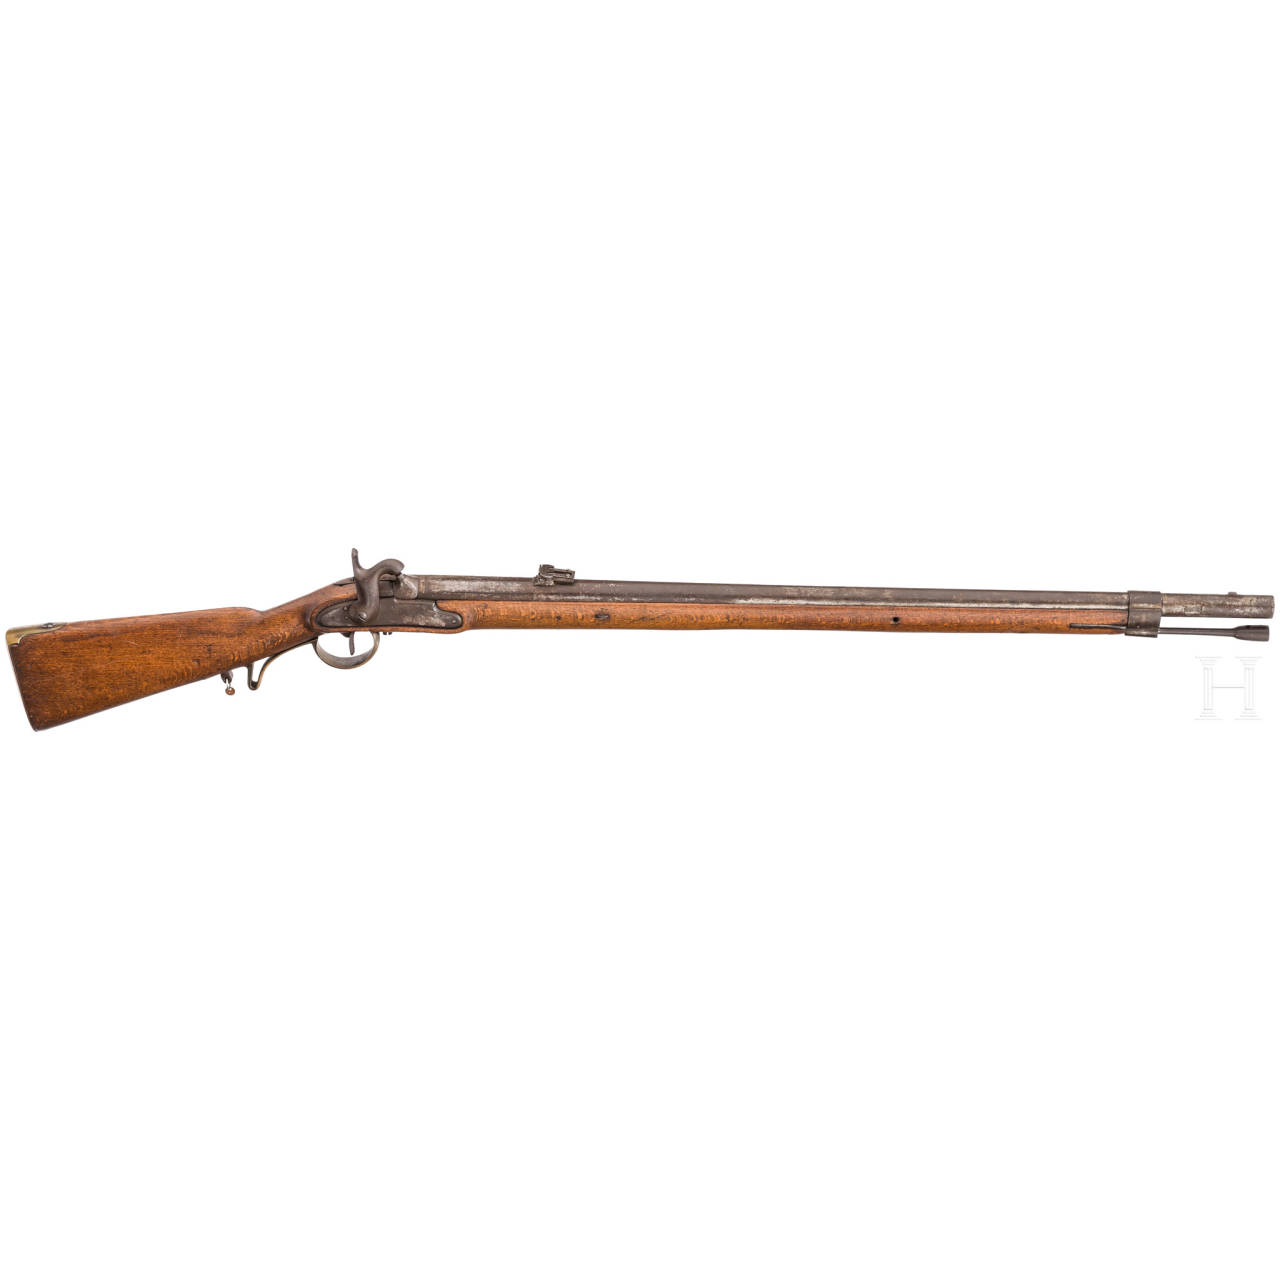 A percussion rifle, similar to Kammerbüchse M 1849